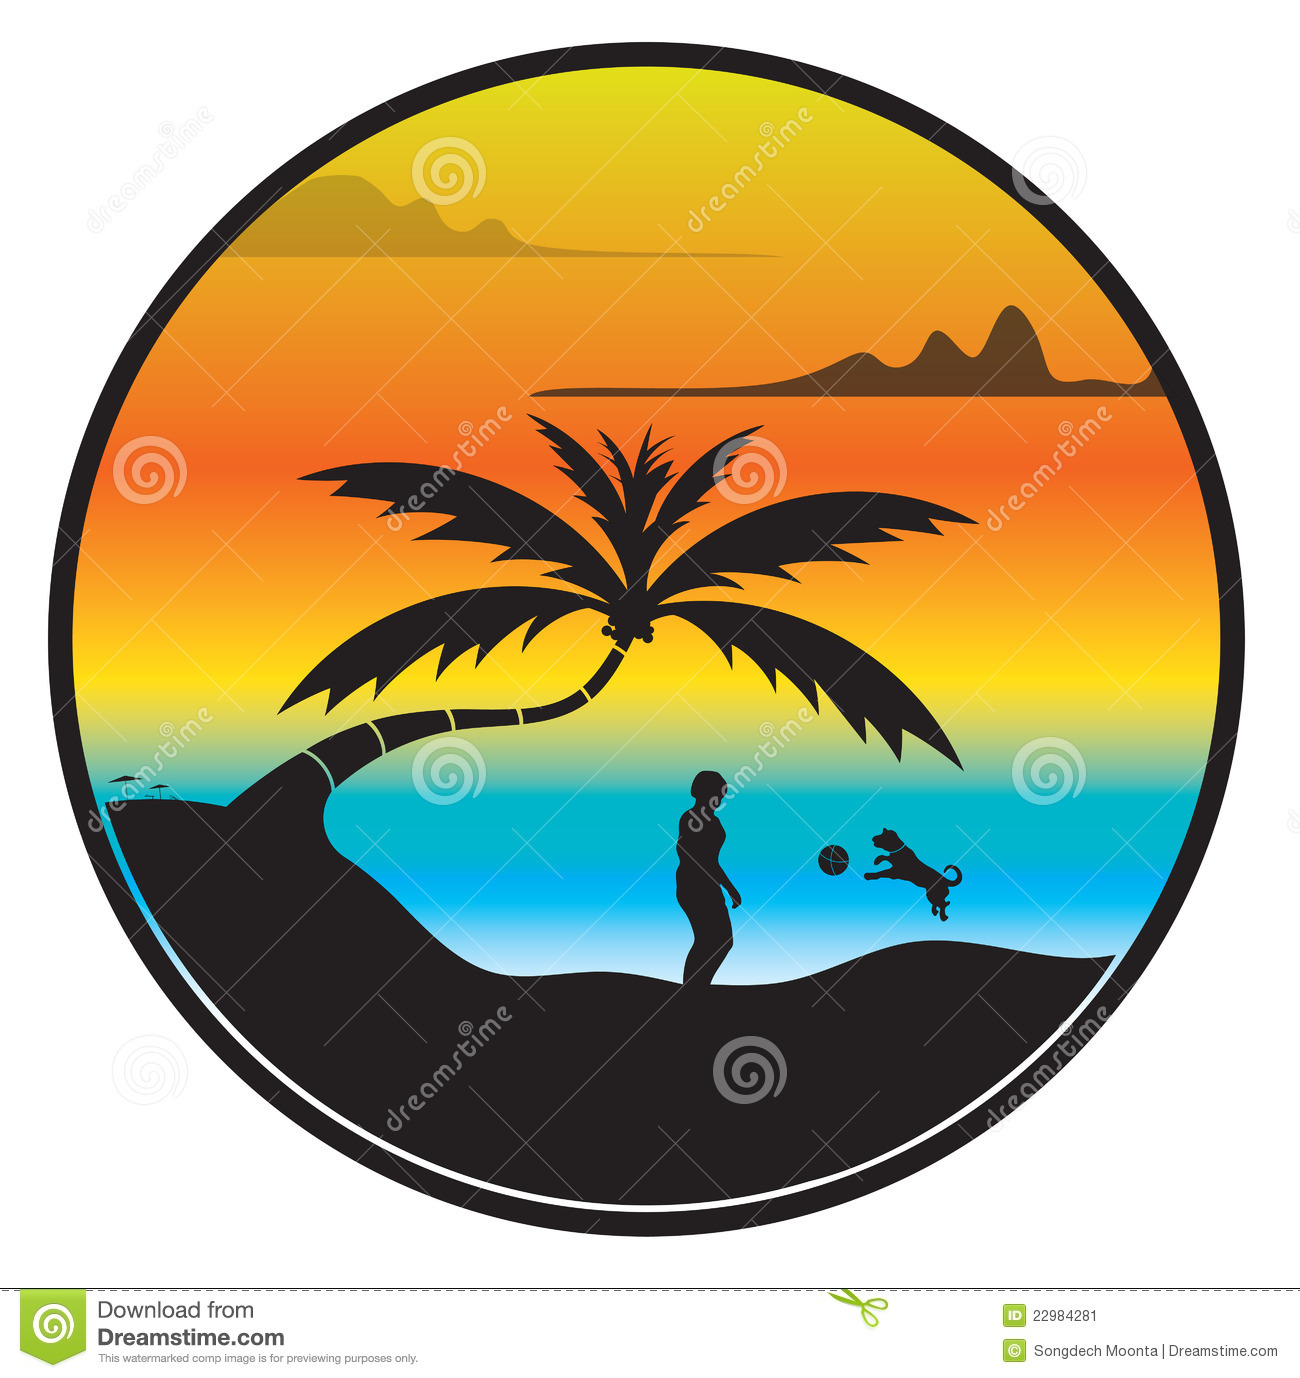 Palm tree sunset clipart 400 pxl by 150 pxl image Palm tree and sunset clipart - ClipartFest image